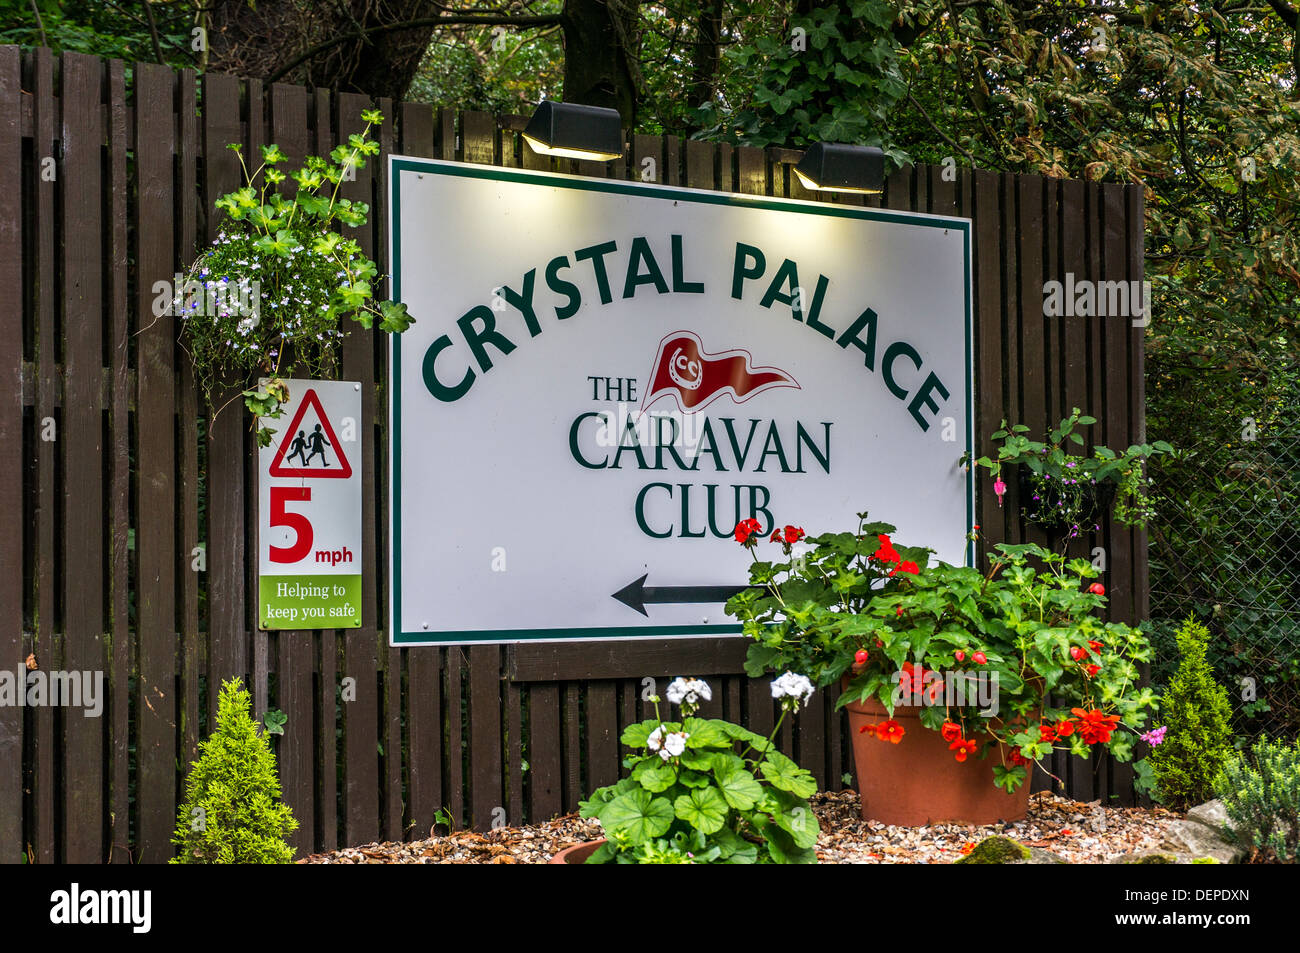 Caravan Club sign at the entrance to the site at Crystal Palace, London, England. - Stock Image